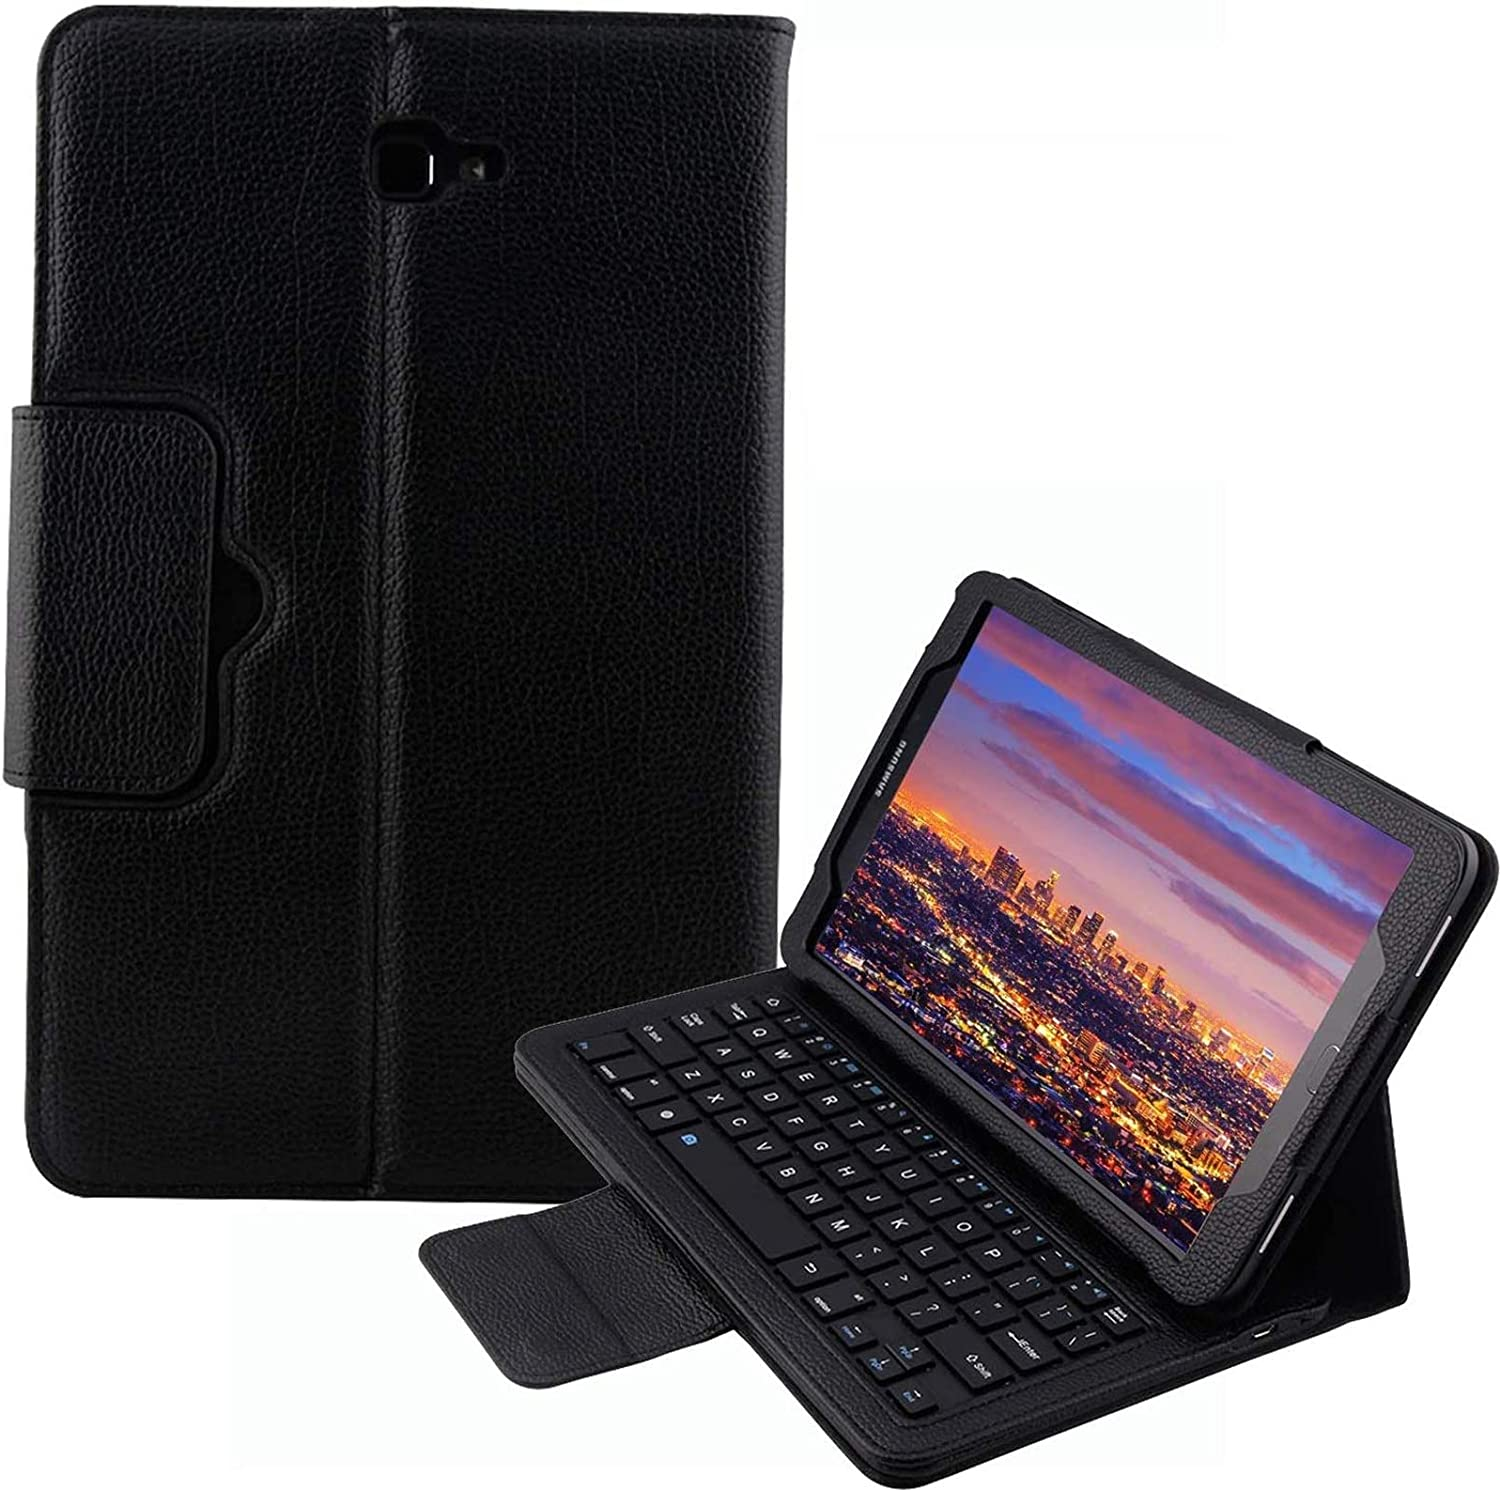 SM-T580 / T585 / T587 Keyboard Case for Samsung Galaxy Tab A 10.1, YMH Detachable Magnetic Removable Wireless Bluetooth Smart Keyboard Cover Protective Stand Book Folio Slim Fit PU Leather (Black)